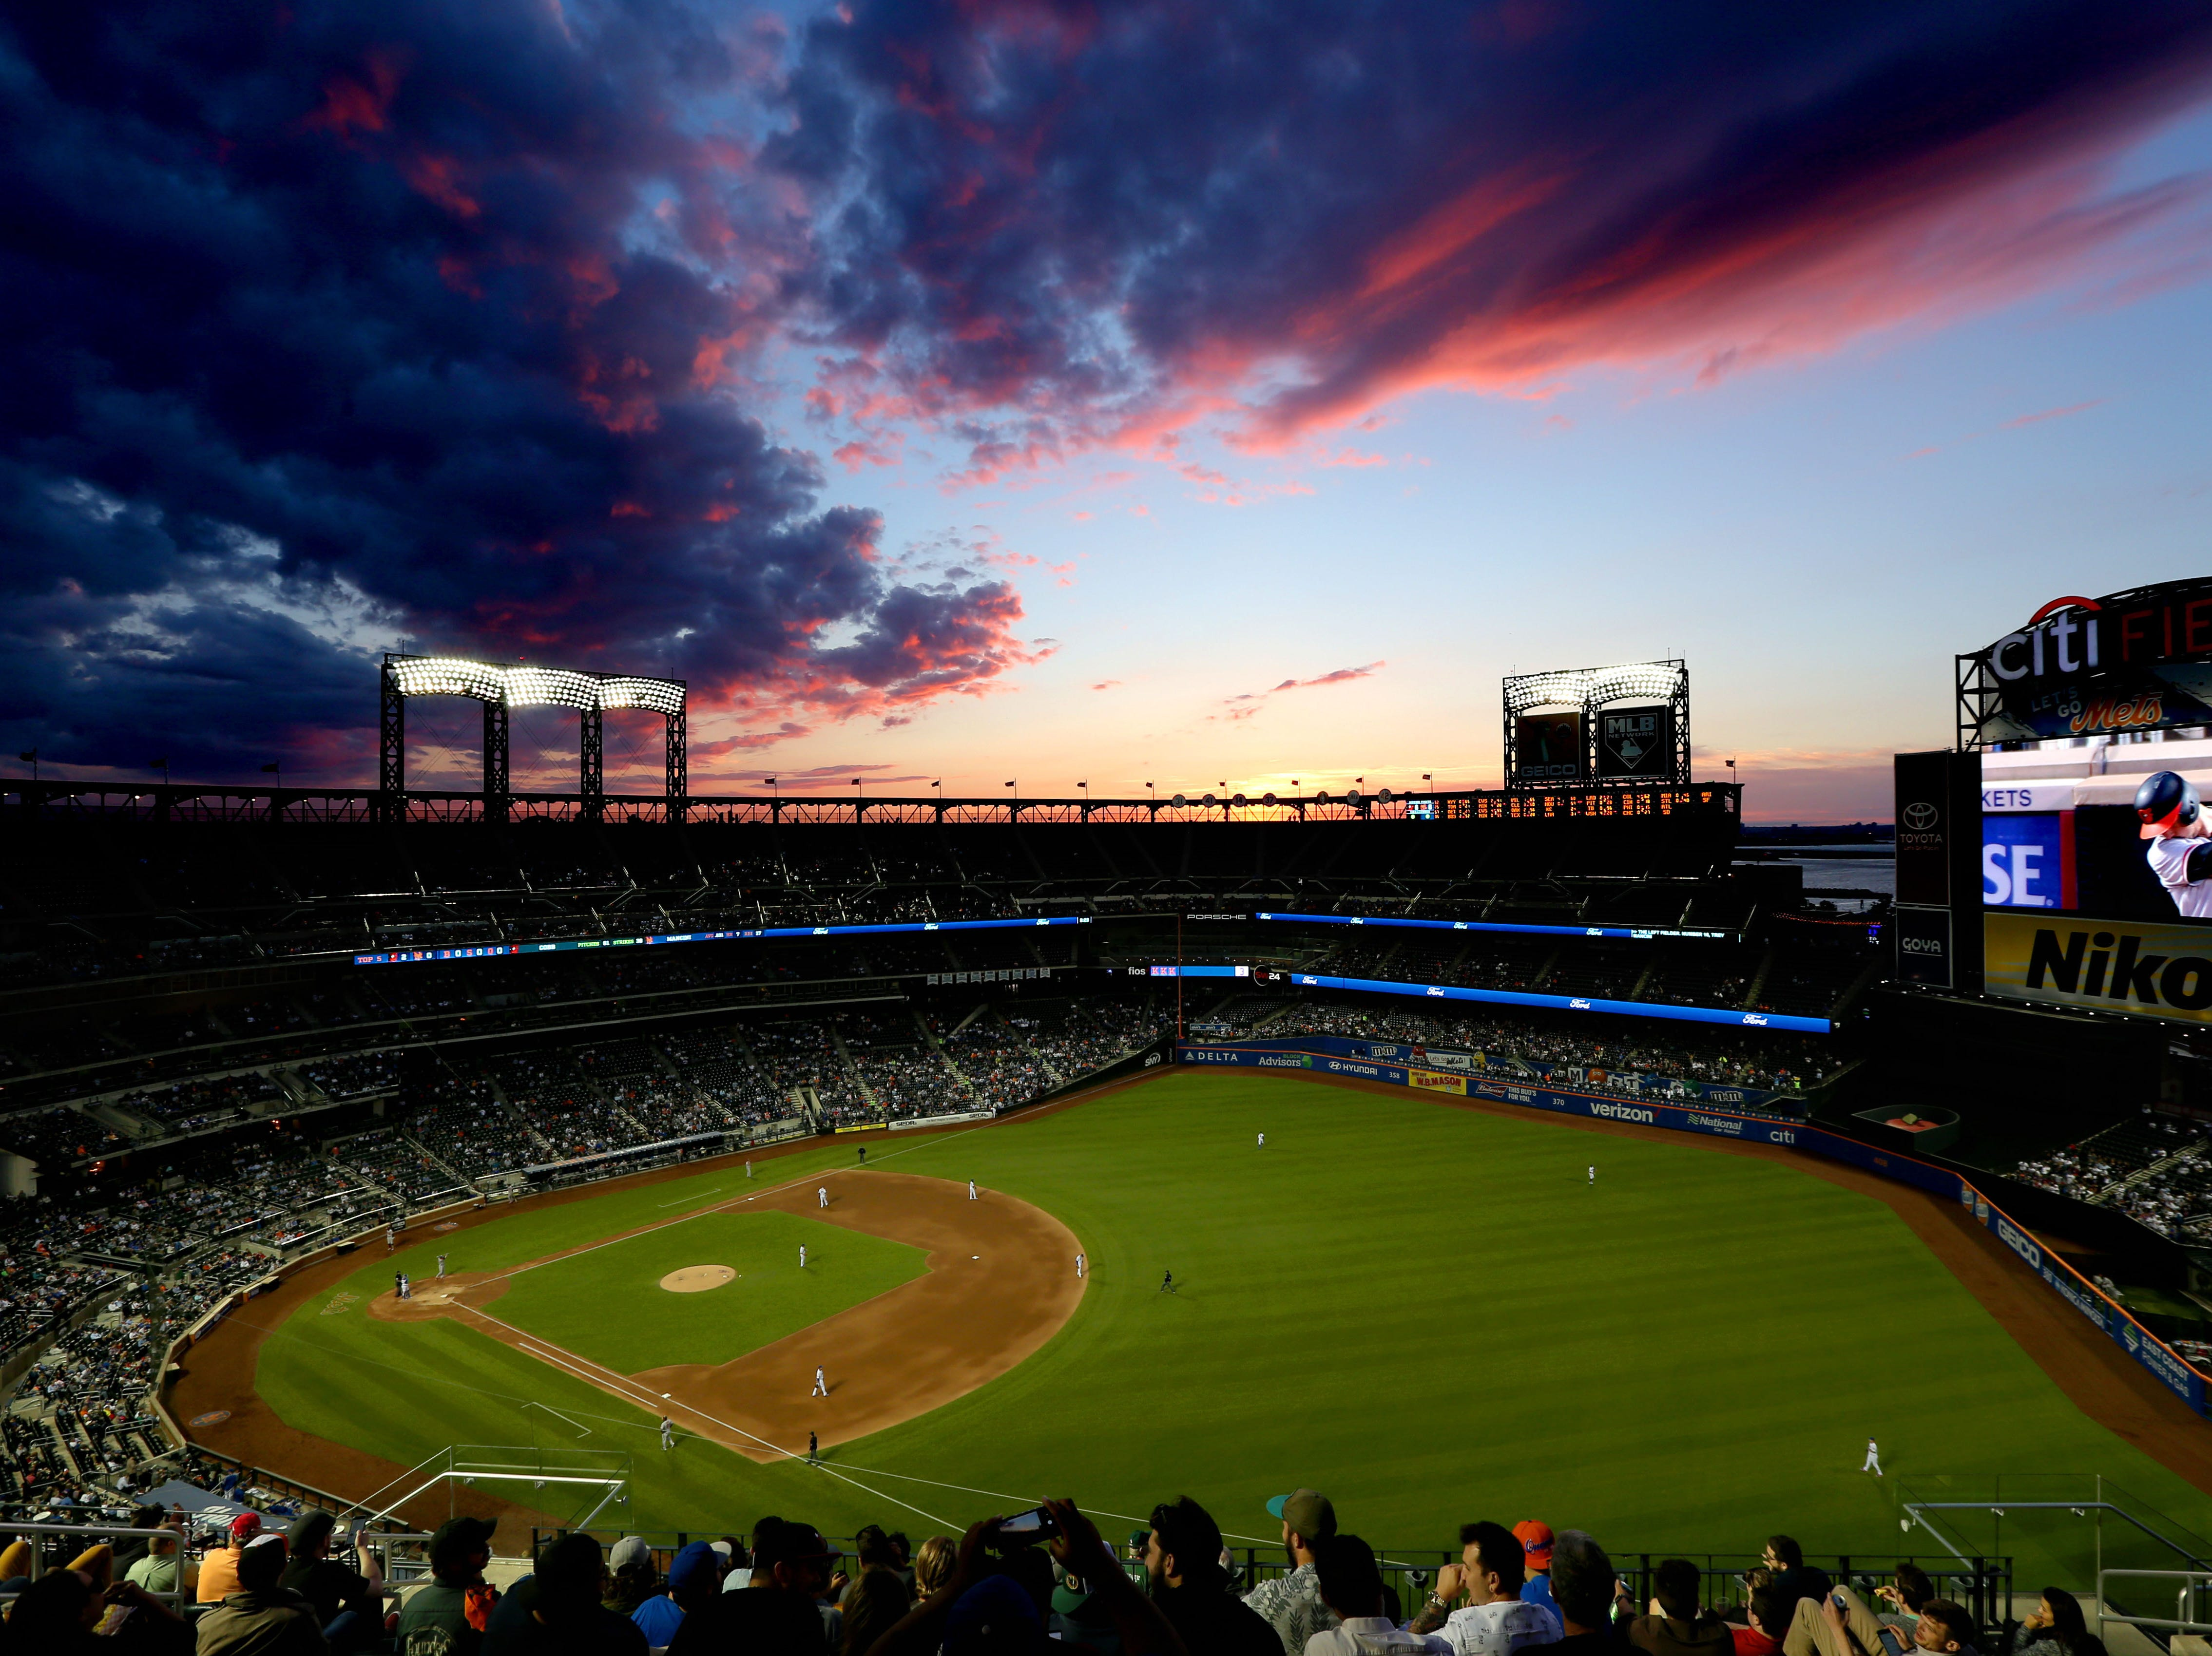 June 5: The sun sets over Citi Field during the fifth inning of a game between the New York Mets and the Baltimore Orioles.